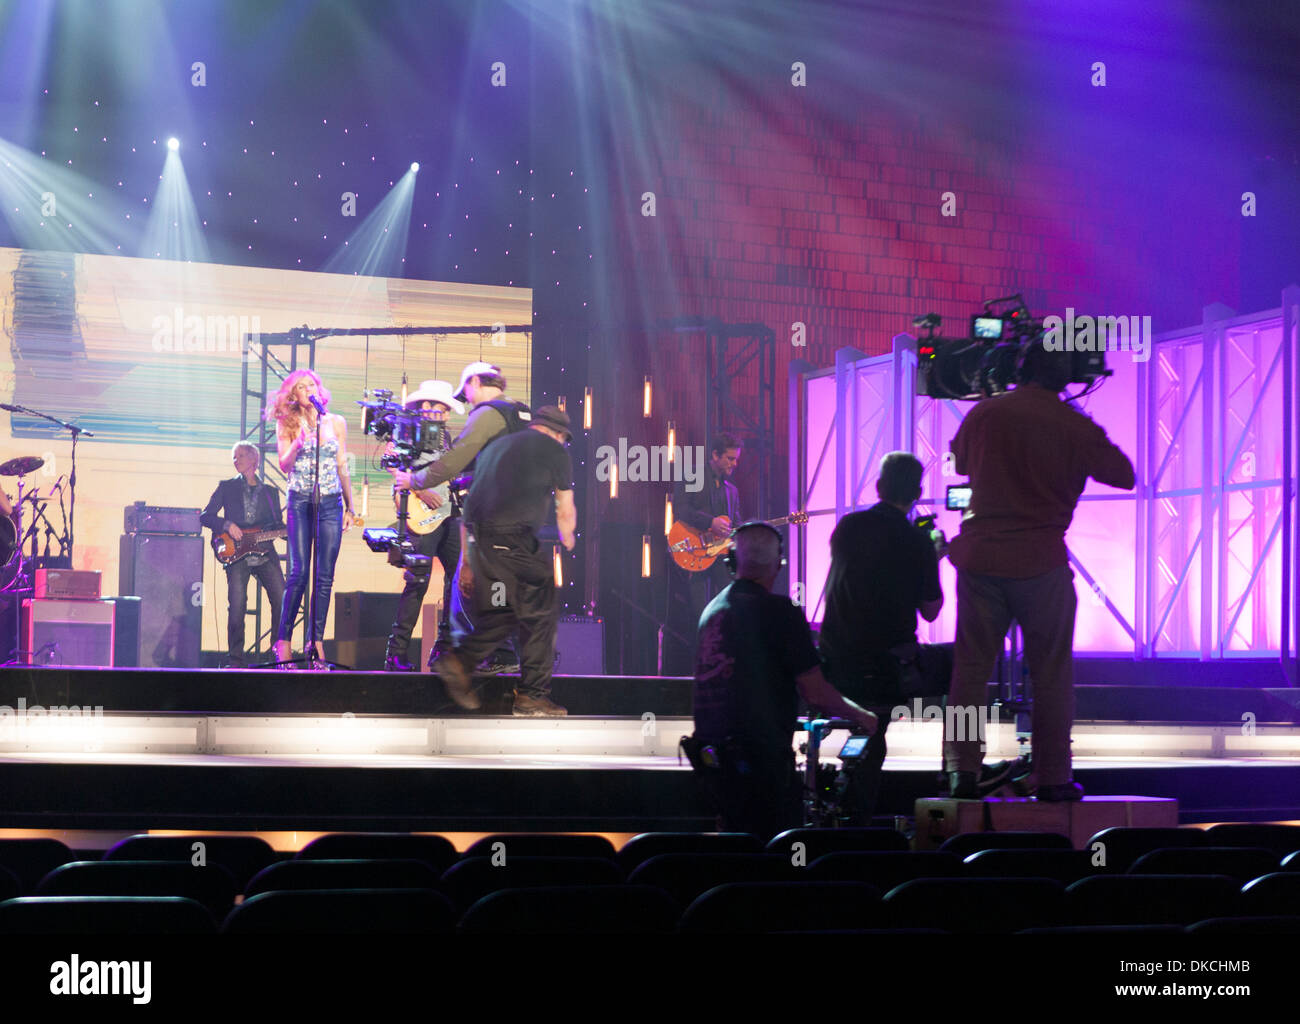 Film crews shoot footage during a musical performance on the set of the US TV show called Nashville and filmed in Nashville, TN - Stock Image